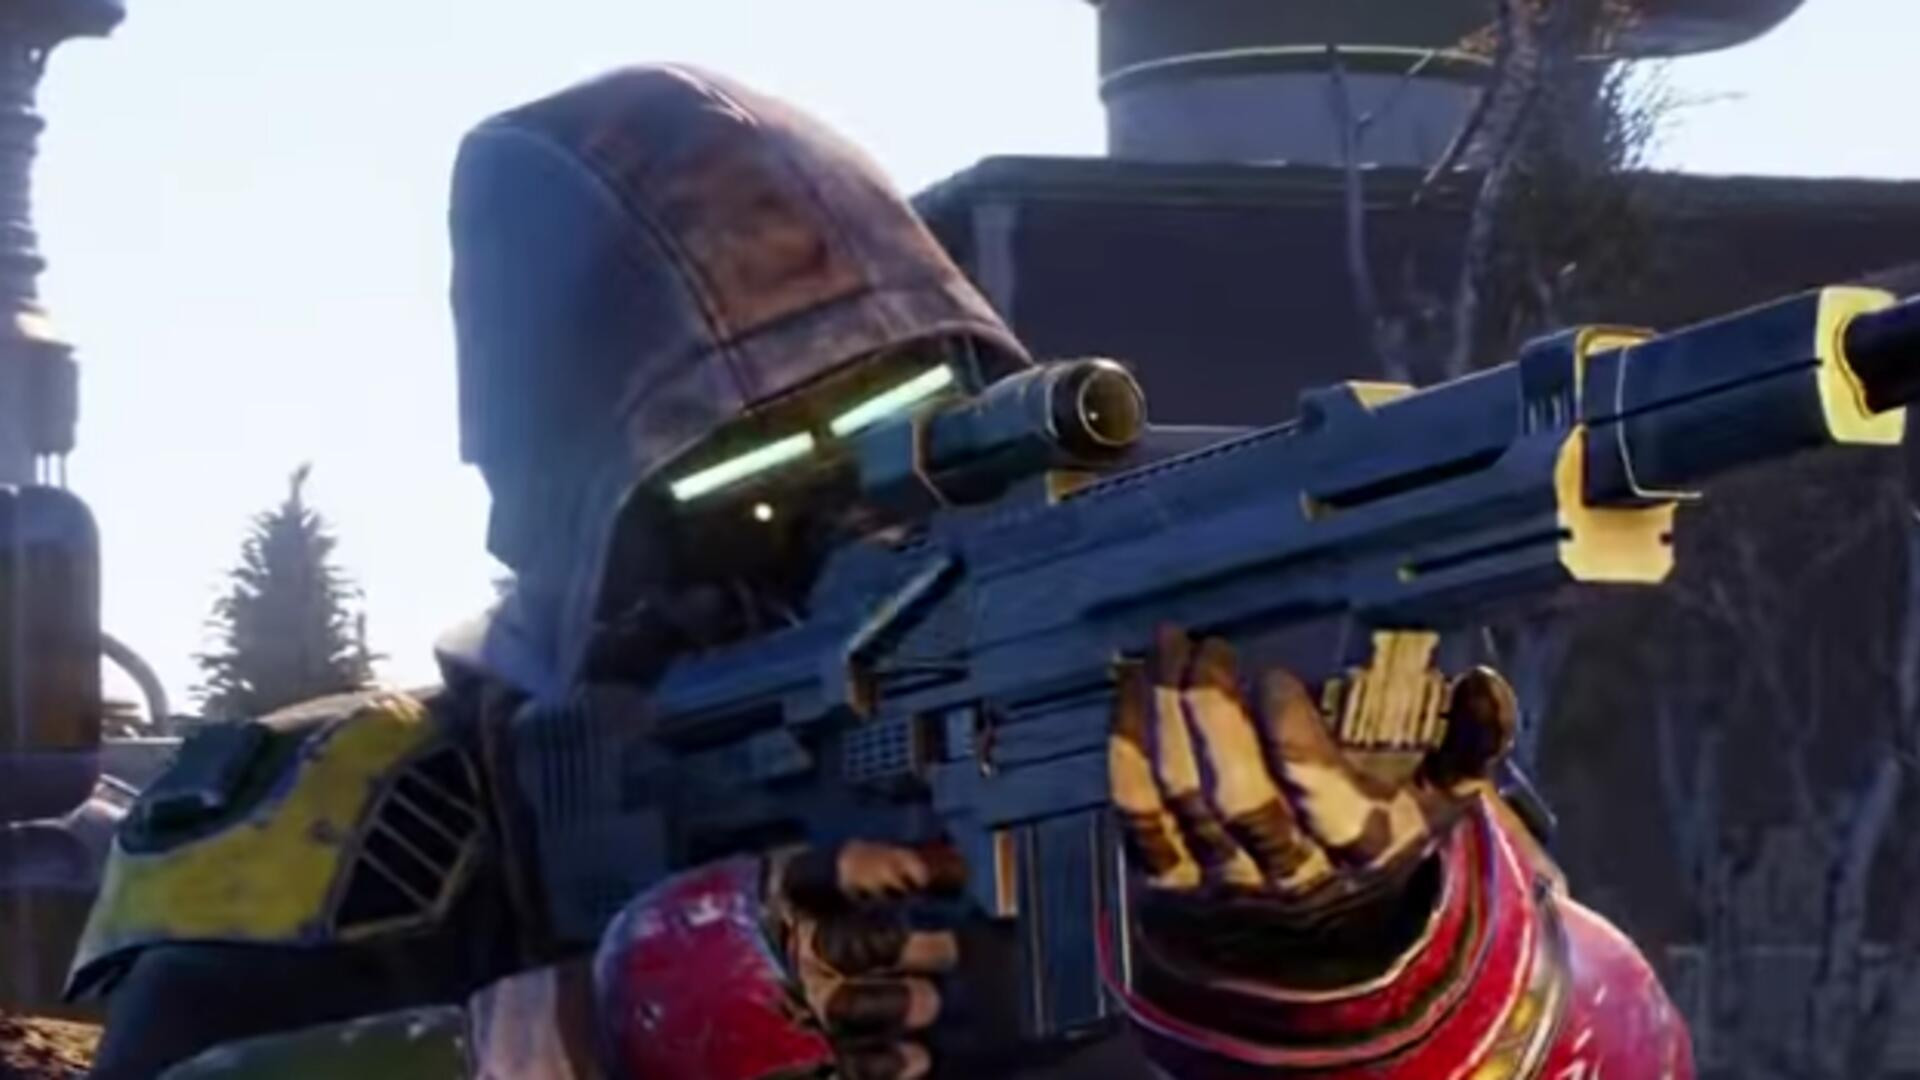 Outer Worlds Won't Have Romances, Plus Other Things We Learned About Obsidian's Big New RPG